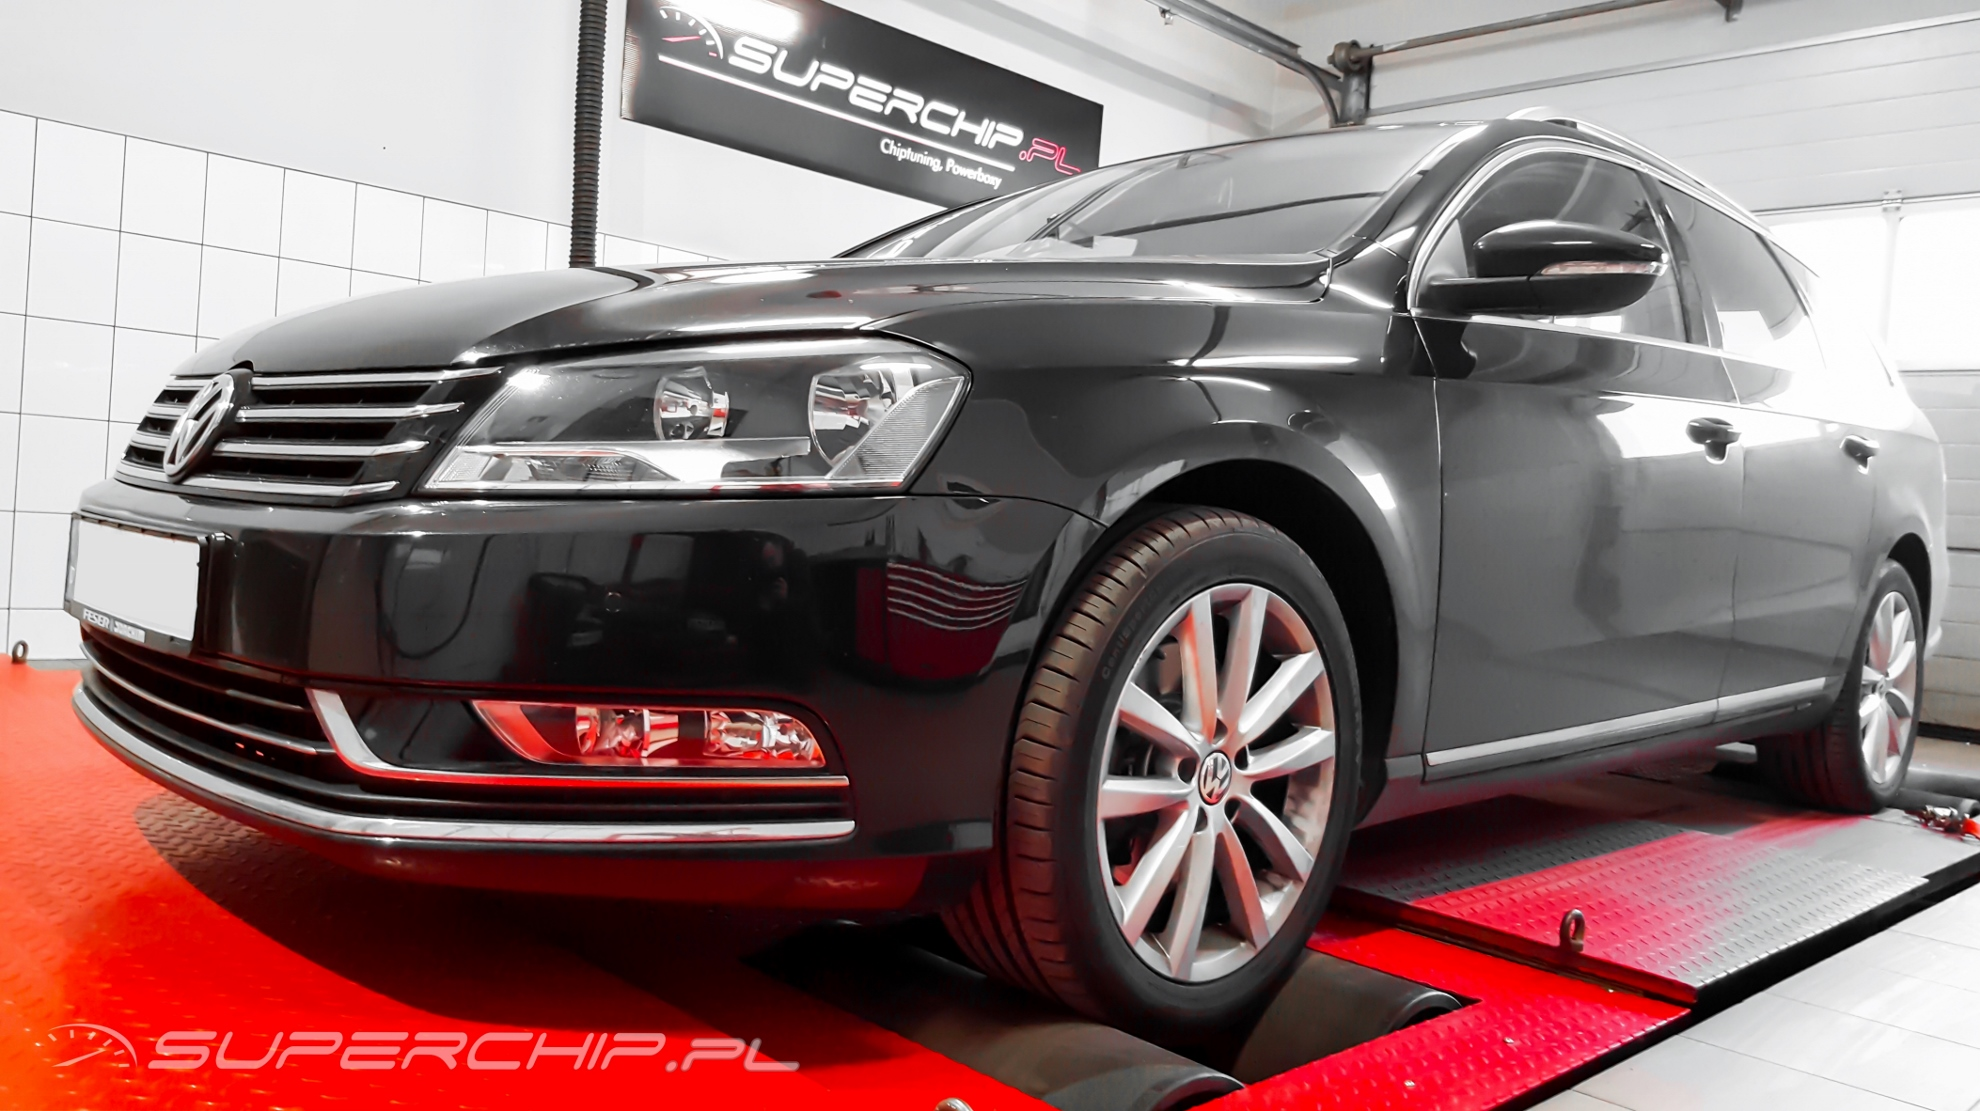 Vw Passat 2.0 TDI CR 177 KM 125 kW ChipTuning